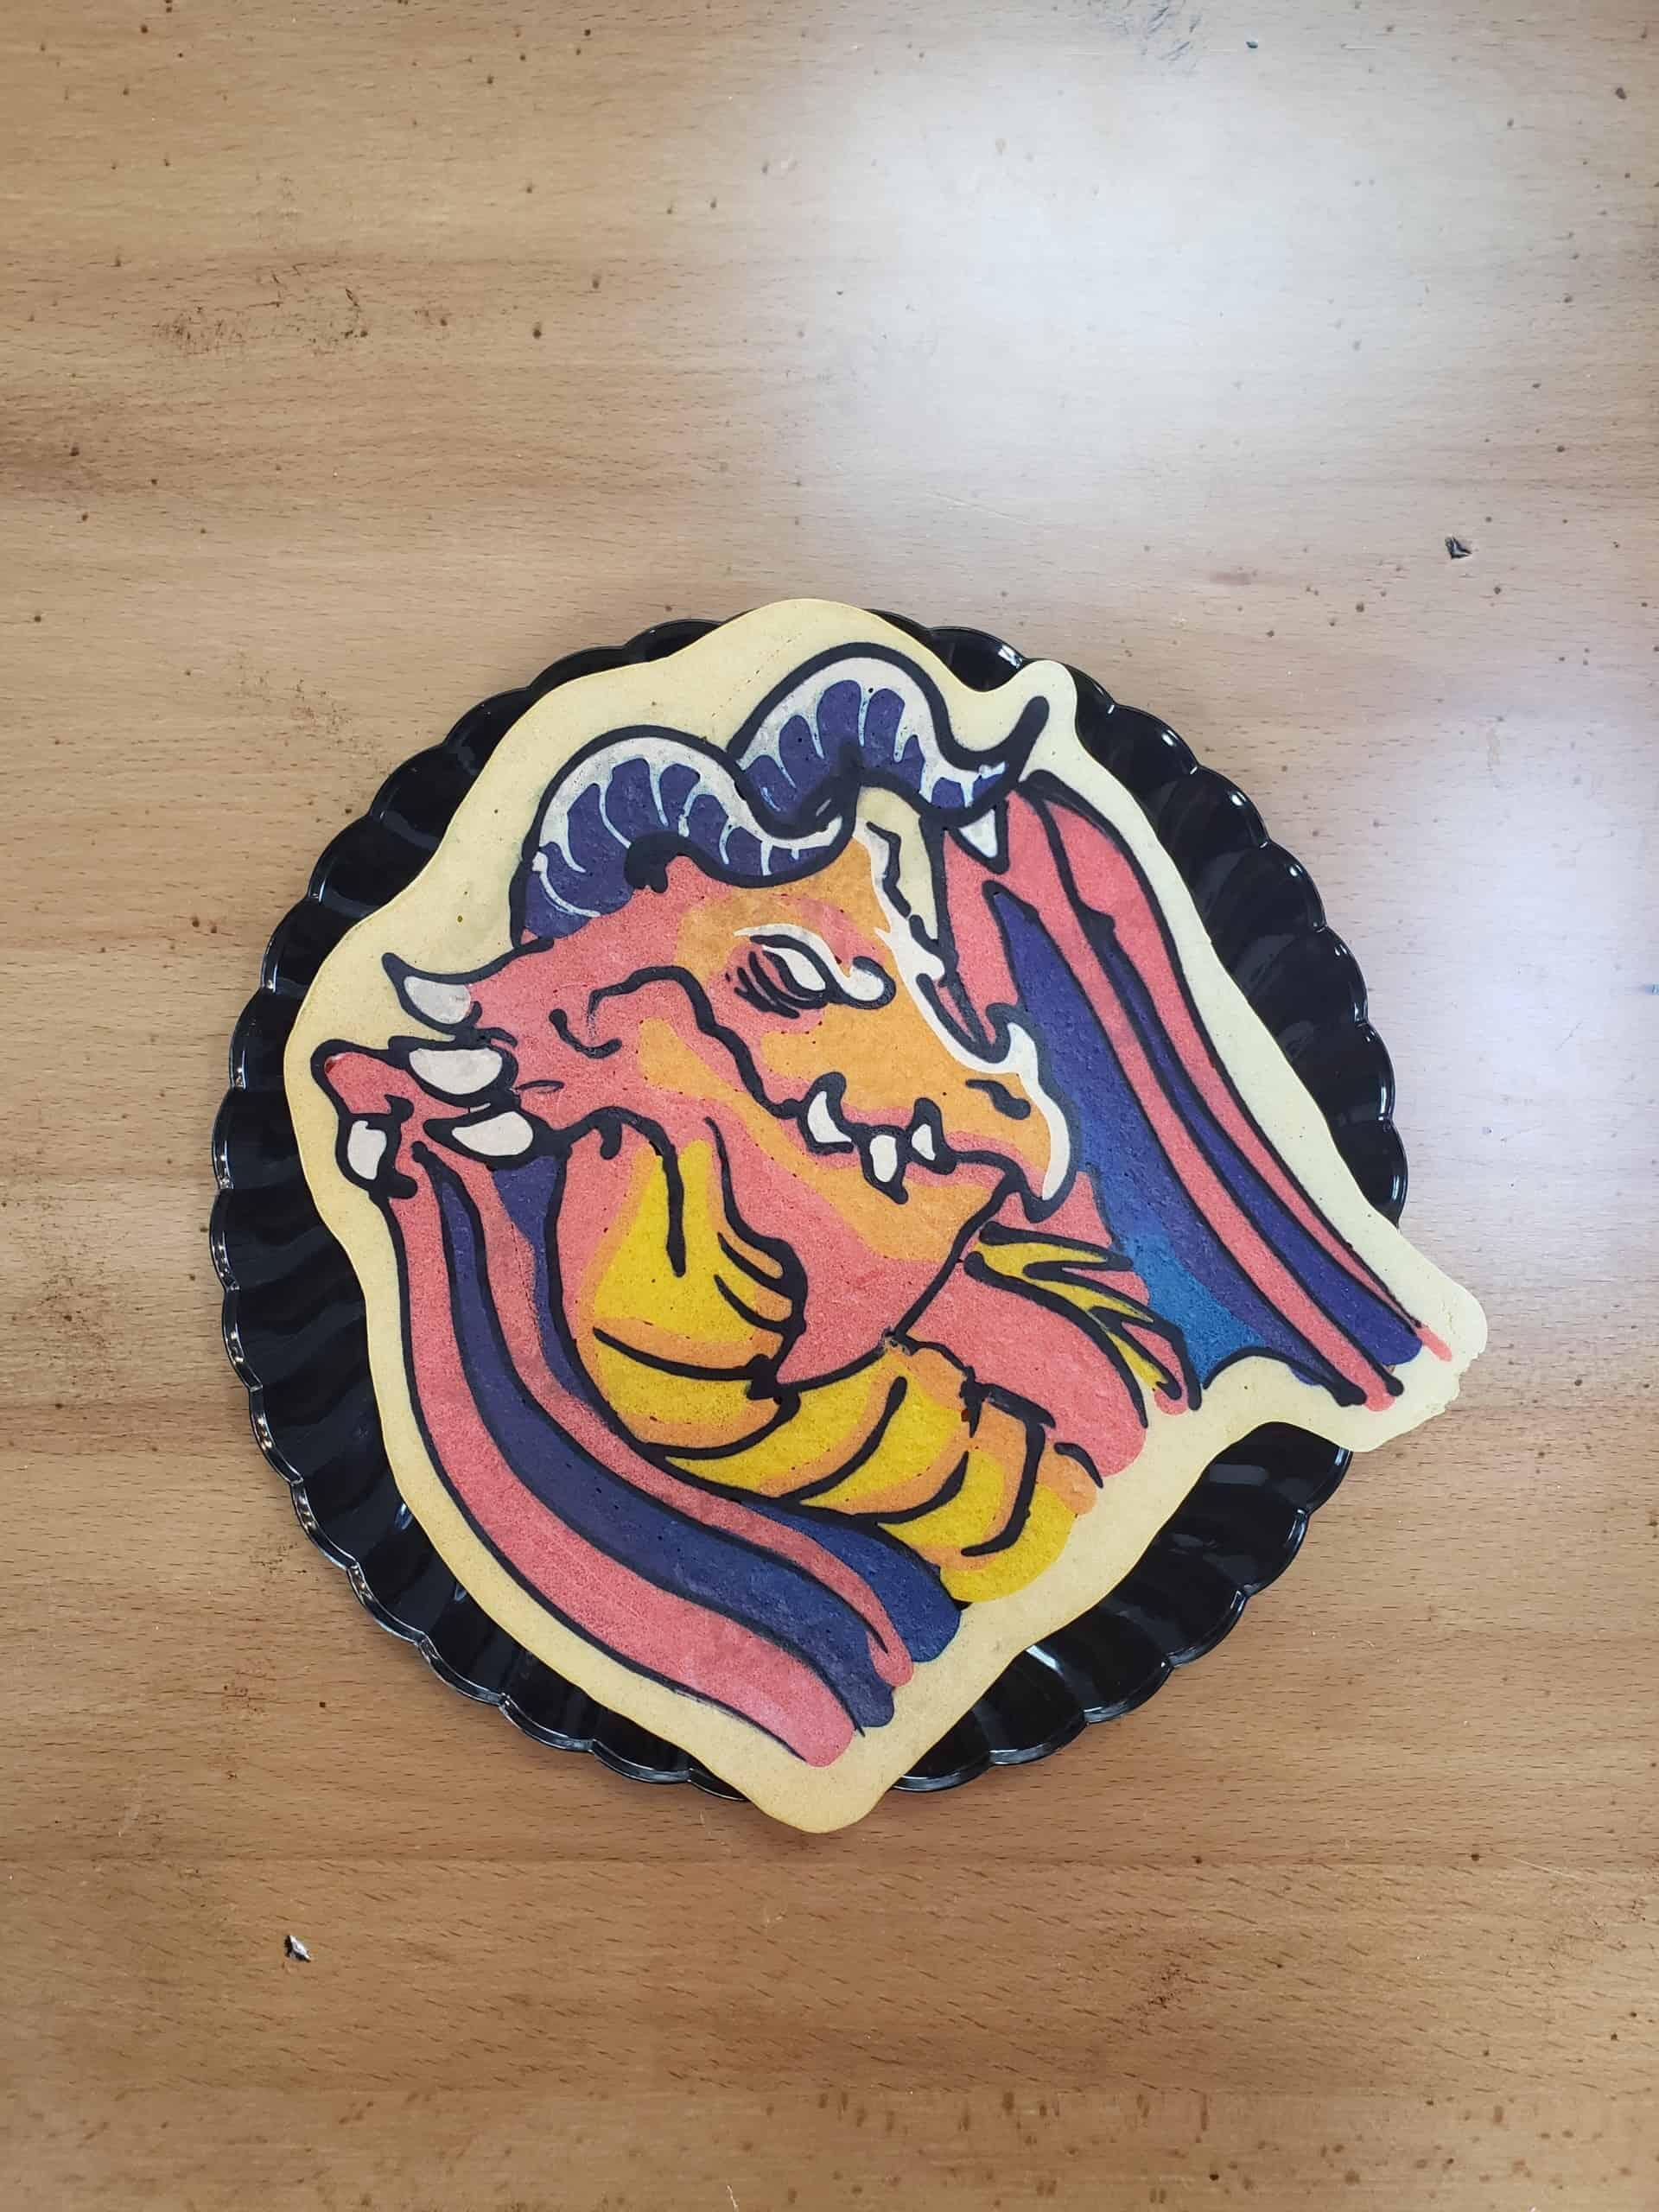 Pancake art of a red dragon with a vicious scowl and white eyes with no pupils. Its chest scales are golden yellow and the skin of its wings are a deep purple, and it has two curved horns atop its head.